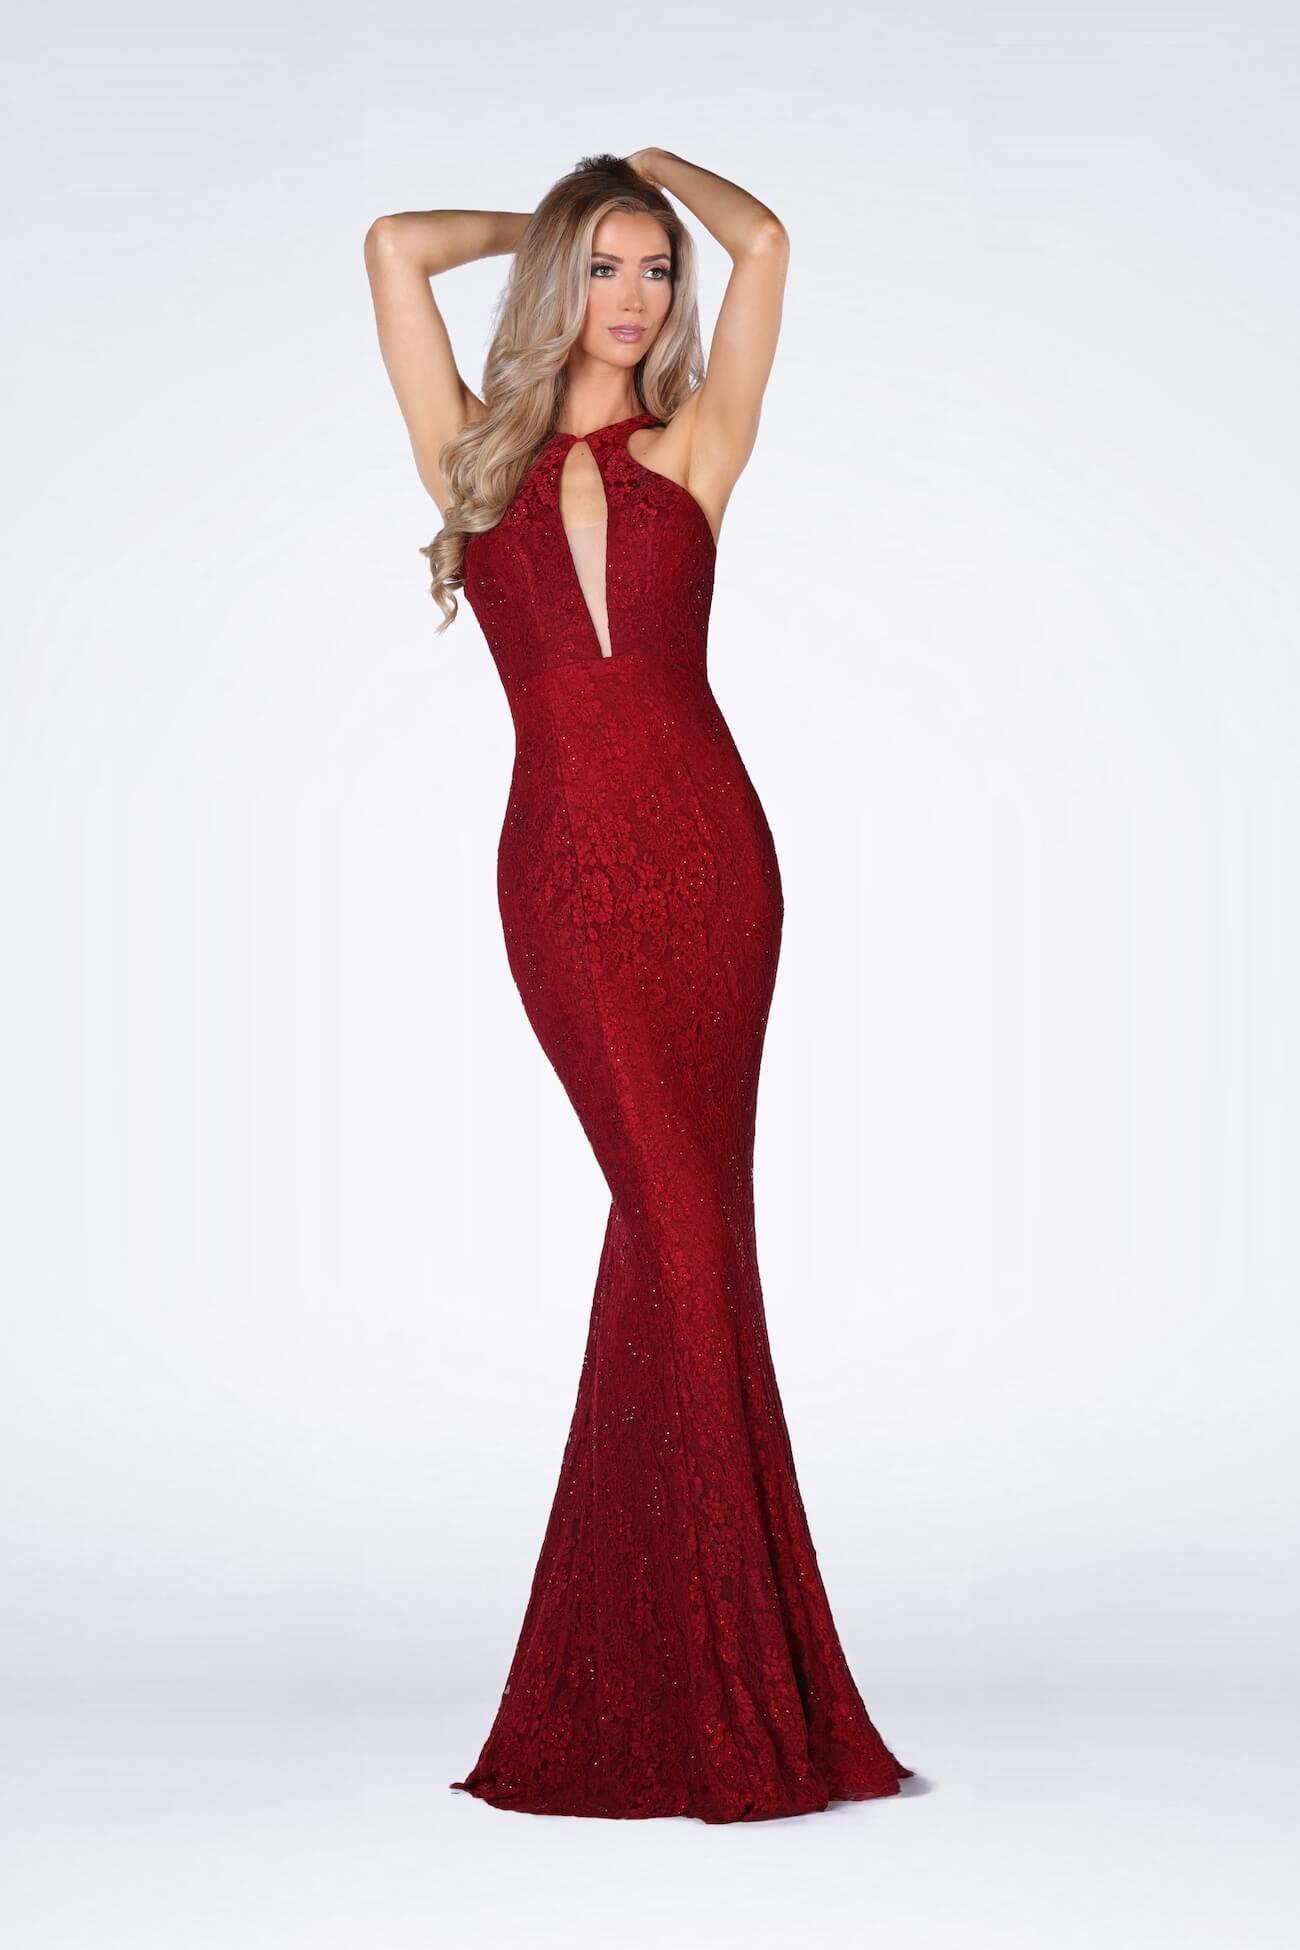 Vienna Red Size 8 Floral Backless Mermaid Dress on Queenly